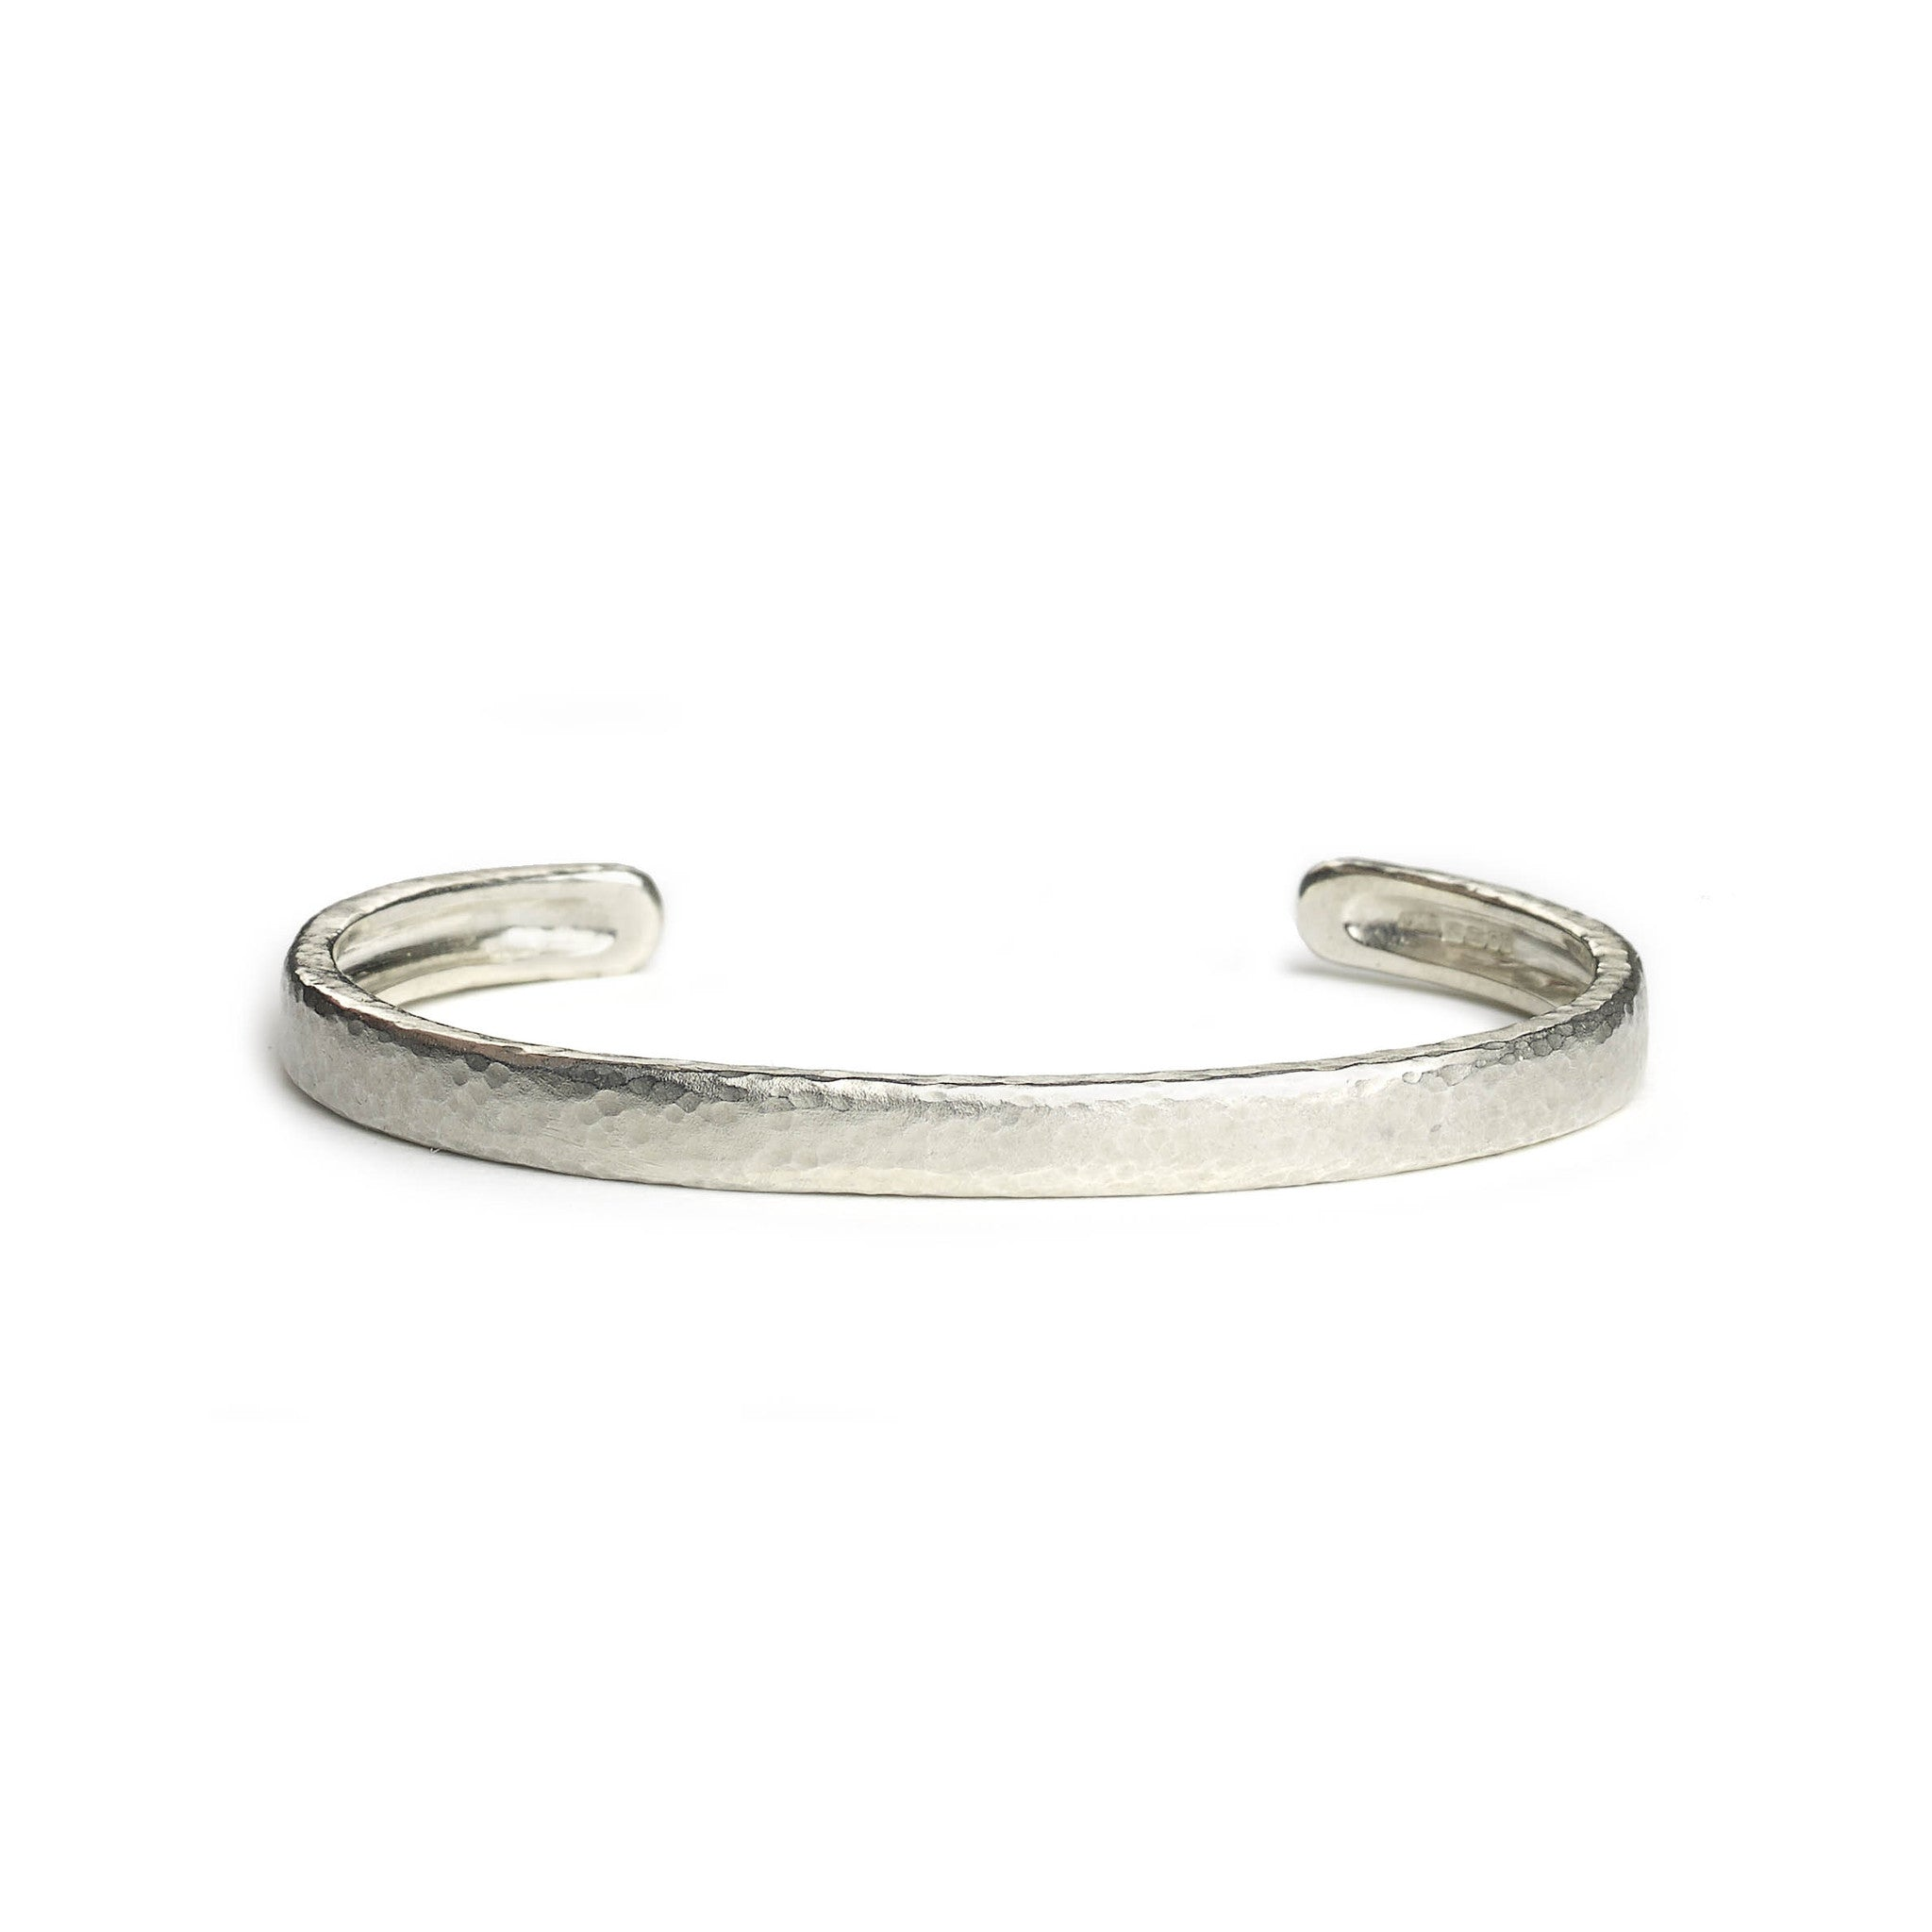 Silver hammered texture bangle